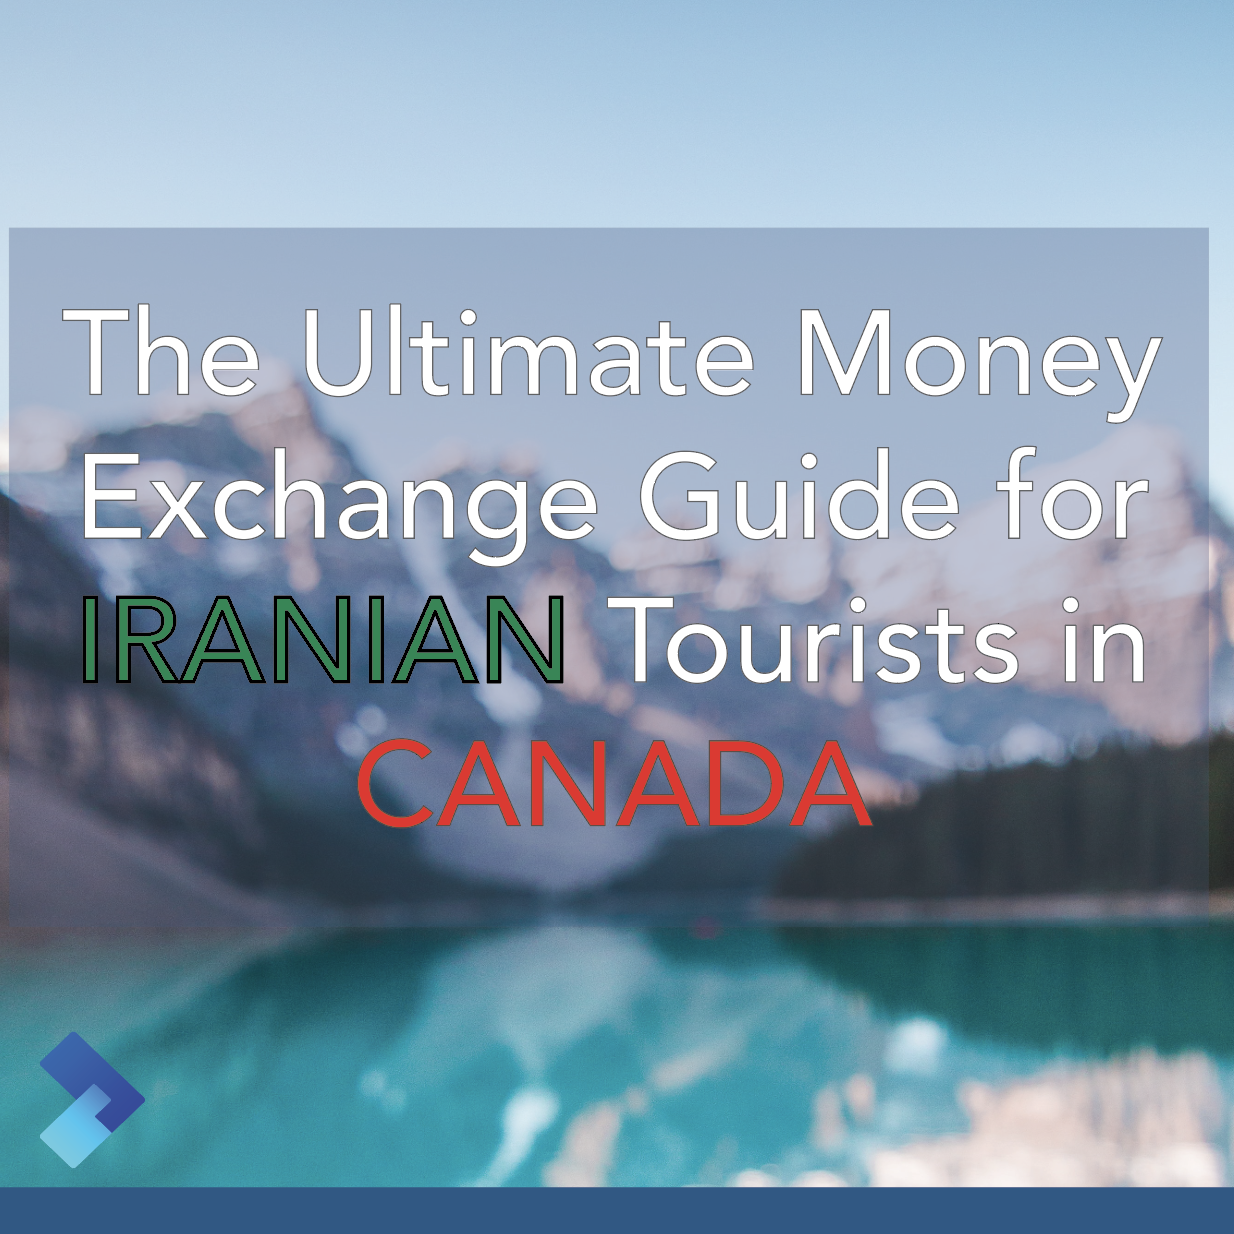 The Ultimate Money Exchange Guide for Iranian Tourists in Canada.